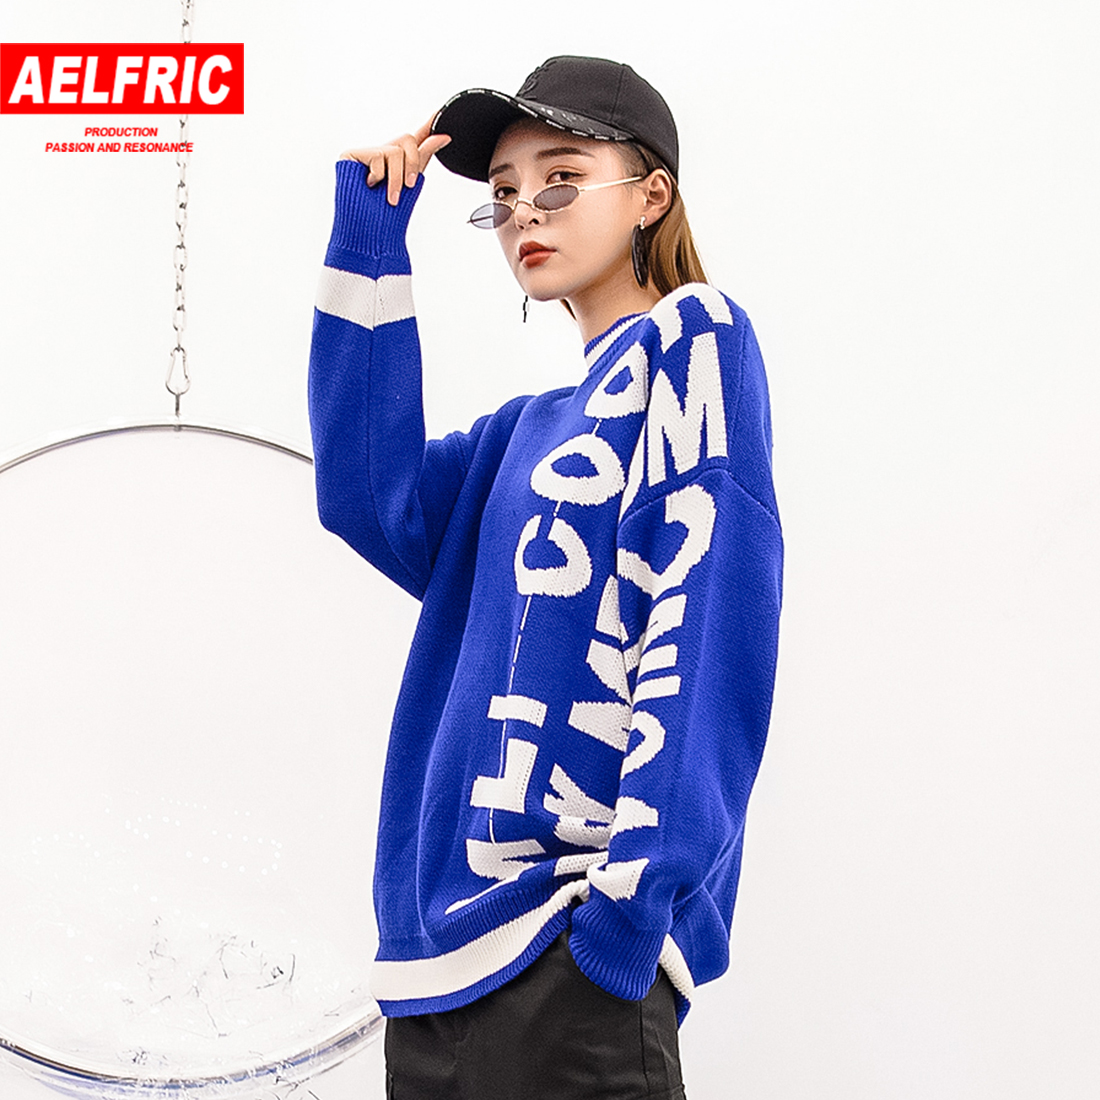 Sincere Aelfric Hip Hop O Neck Pullover Sweater Women Casual 2019 New Spring Loose Oversize Knitting Leteet Striped Embroidery Knitted Careful Calculation And Strict Budgeting